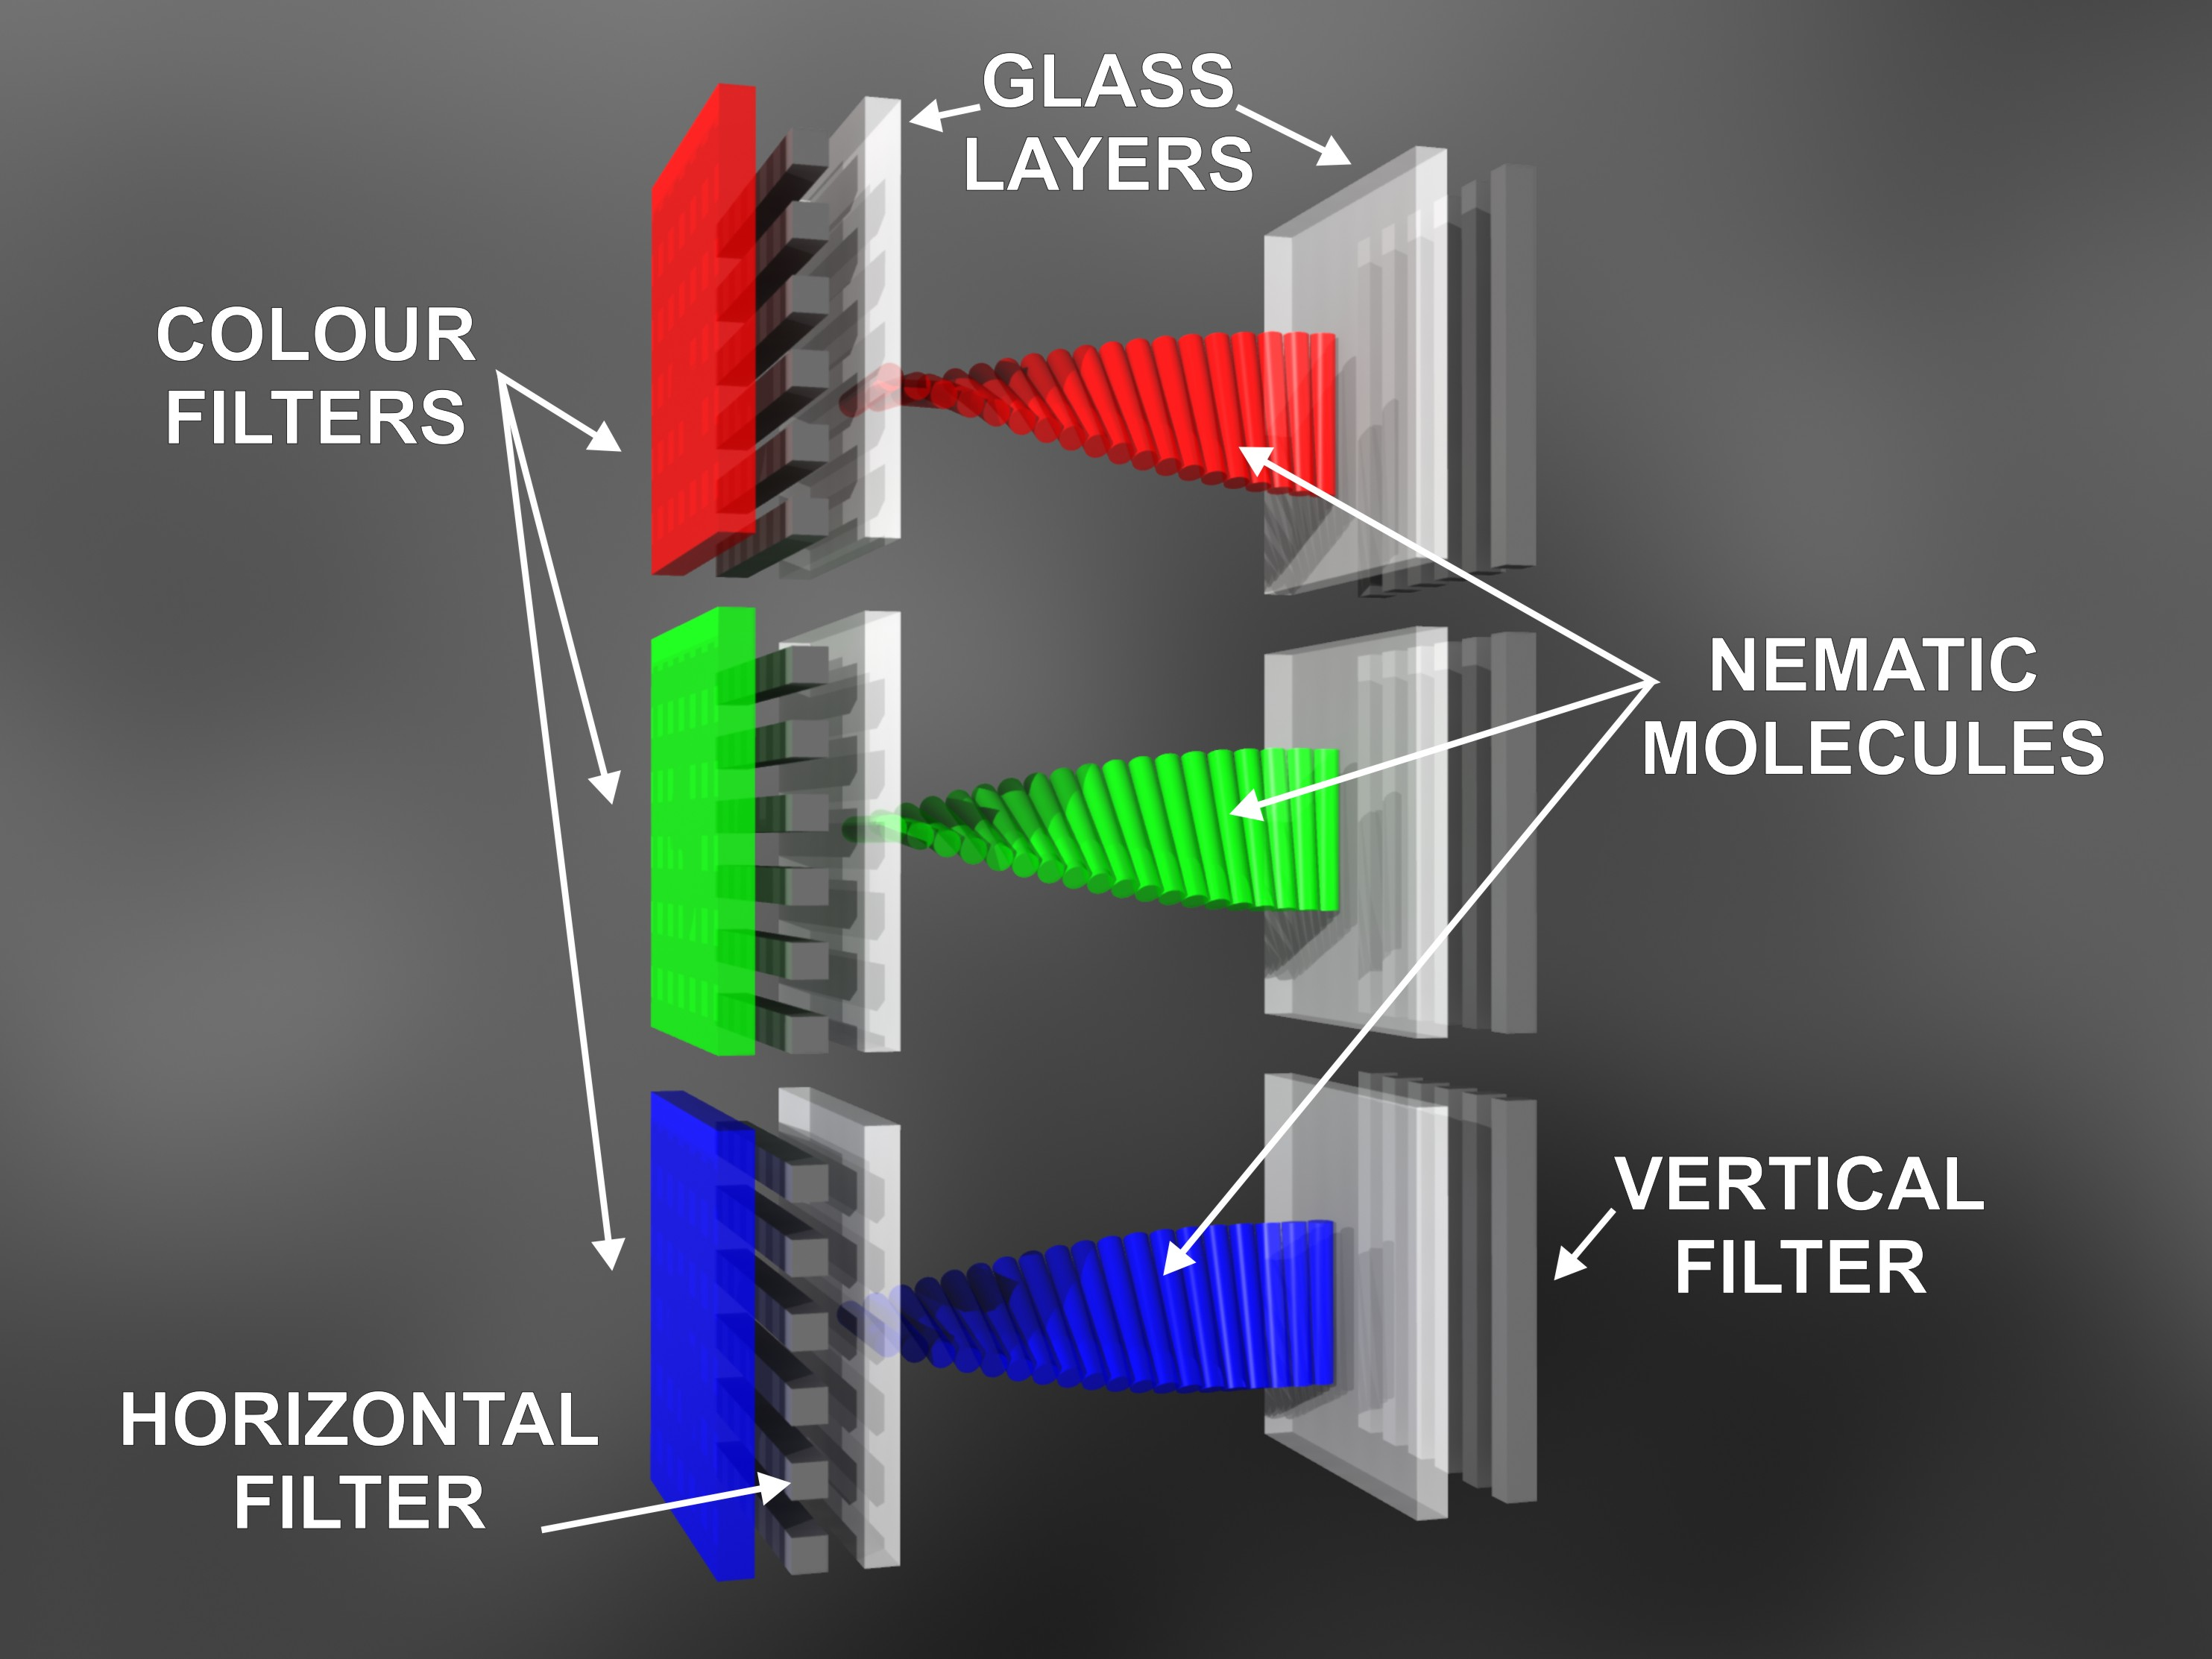 Color Filter Lcd Tv Diagram Wiring Libraries Screen Simple Schemaresearchers Develop More Efficient For Lcds